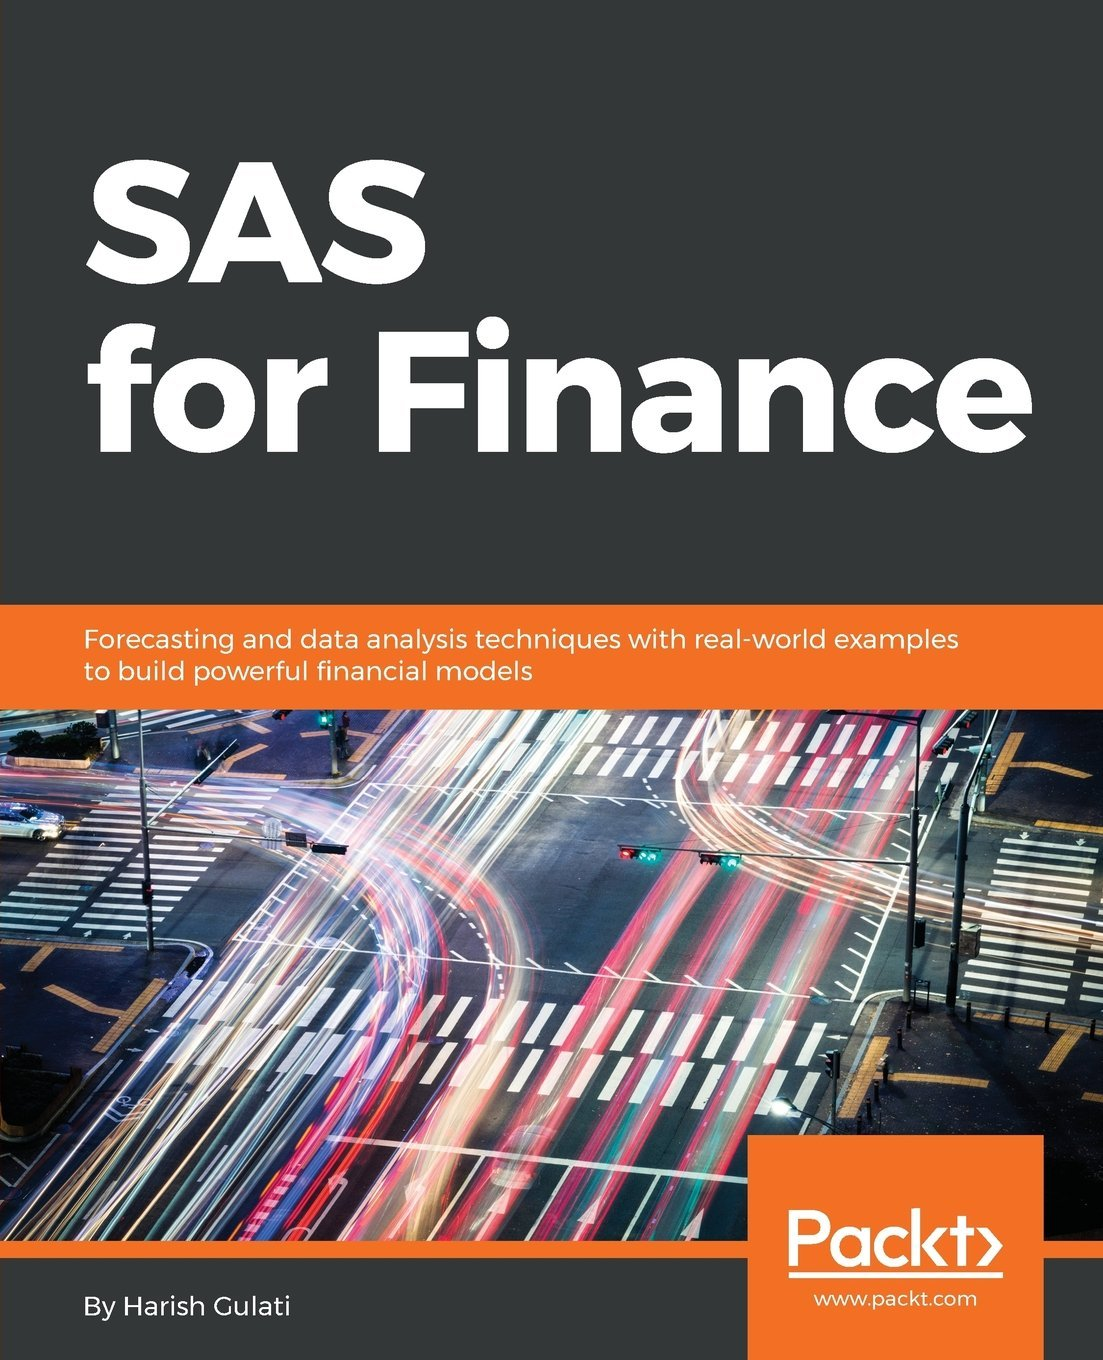 SAS for Finance: Forecasting and data analysis techniques